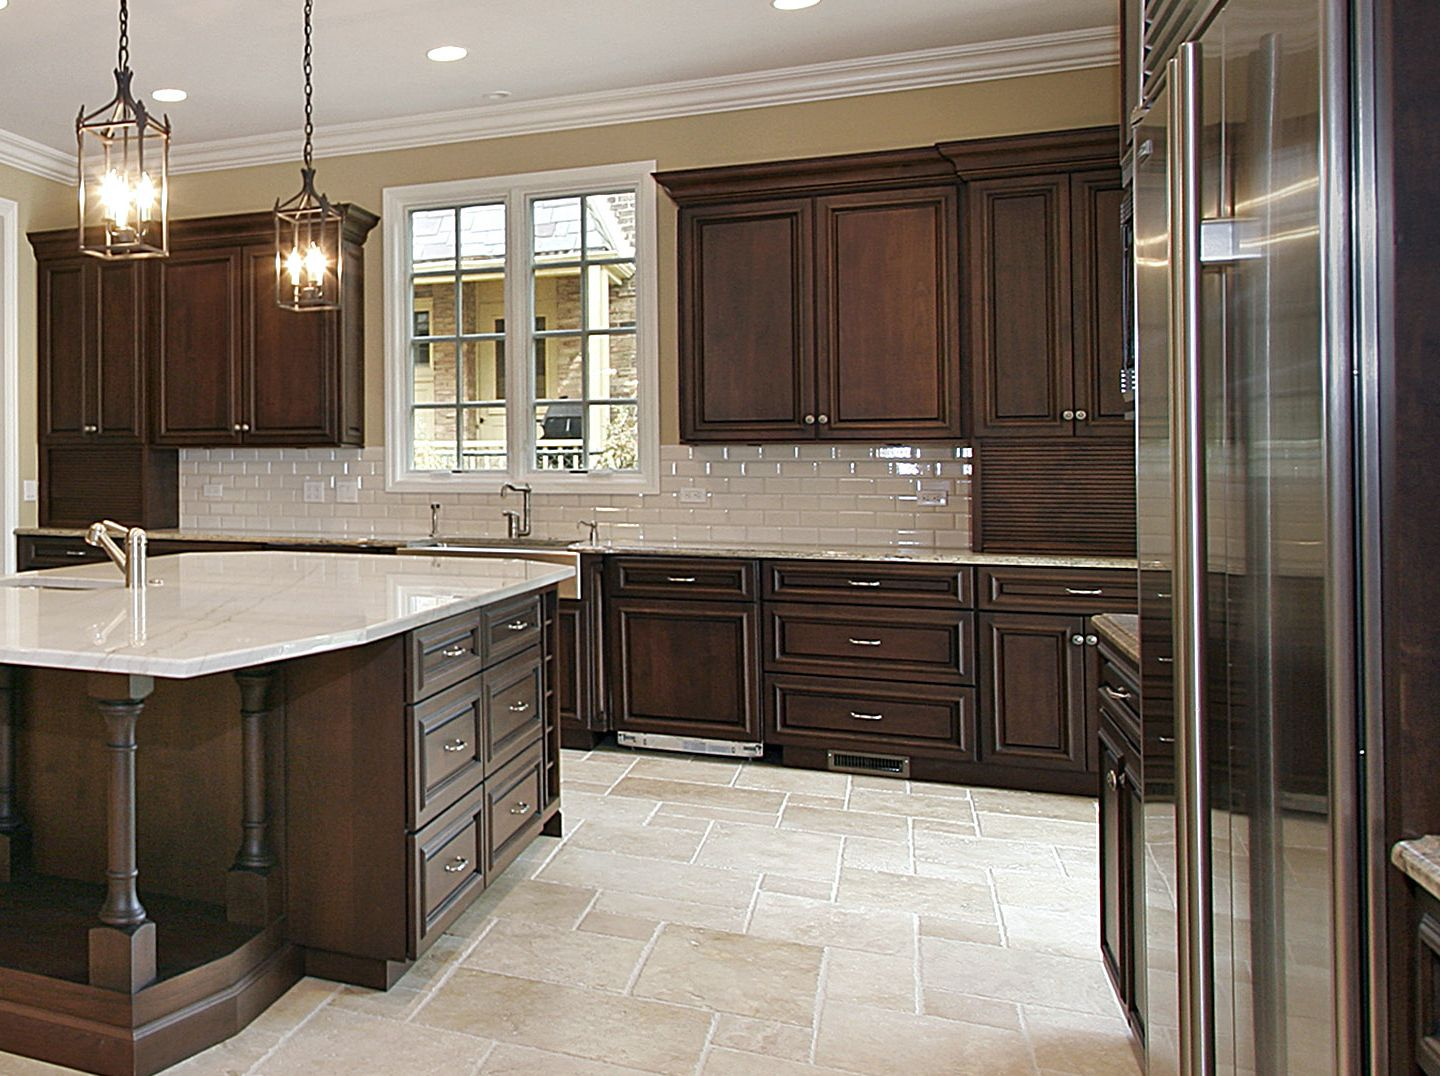 Classic dark cherry kitchen with large island www for Dark kitchen cabinets with light island